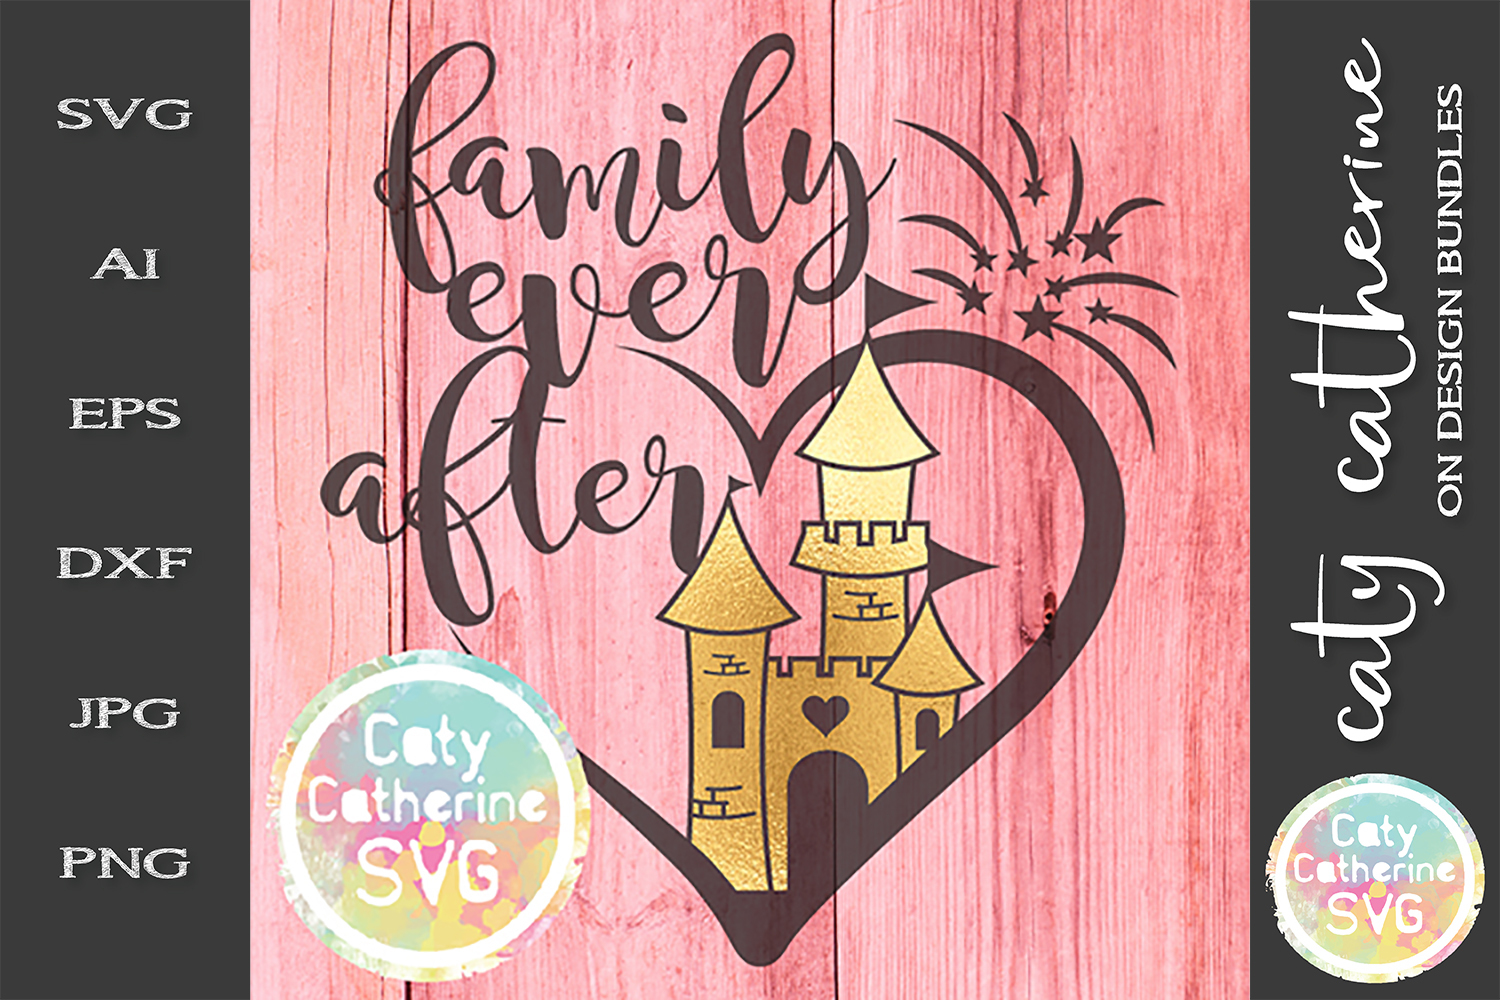 Family Ever After Castle Fireworks SVG Cut File example image 1